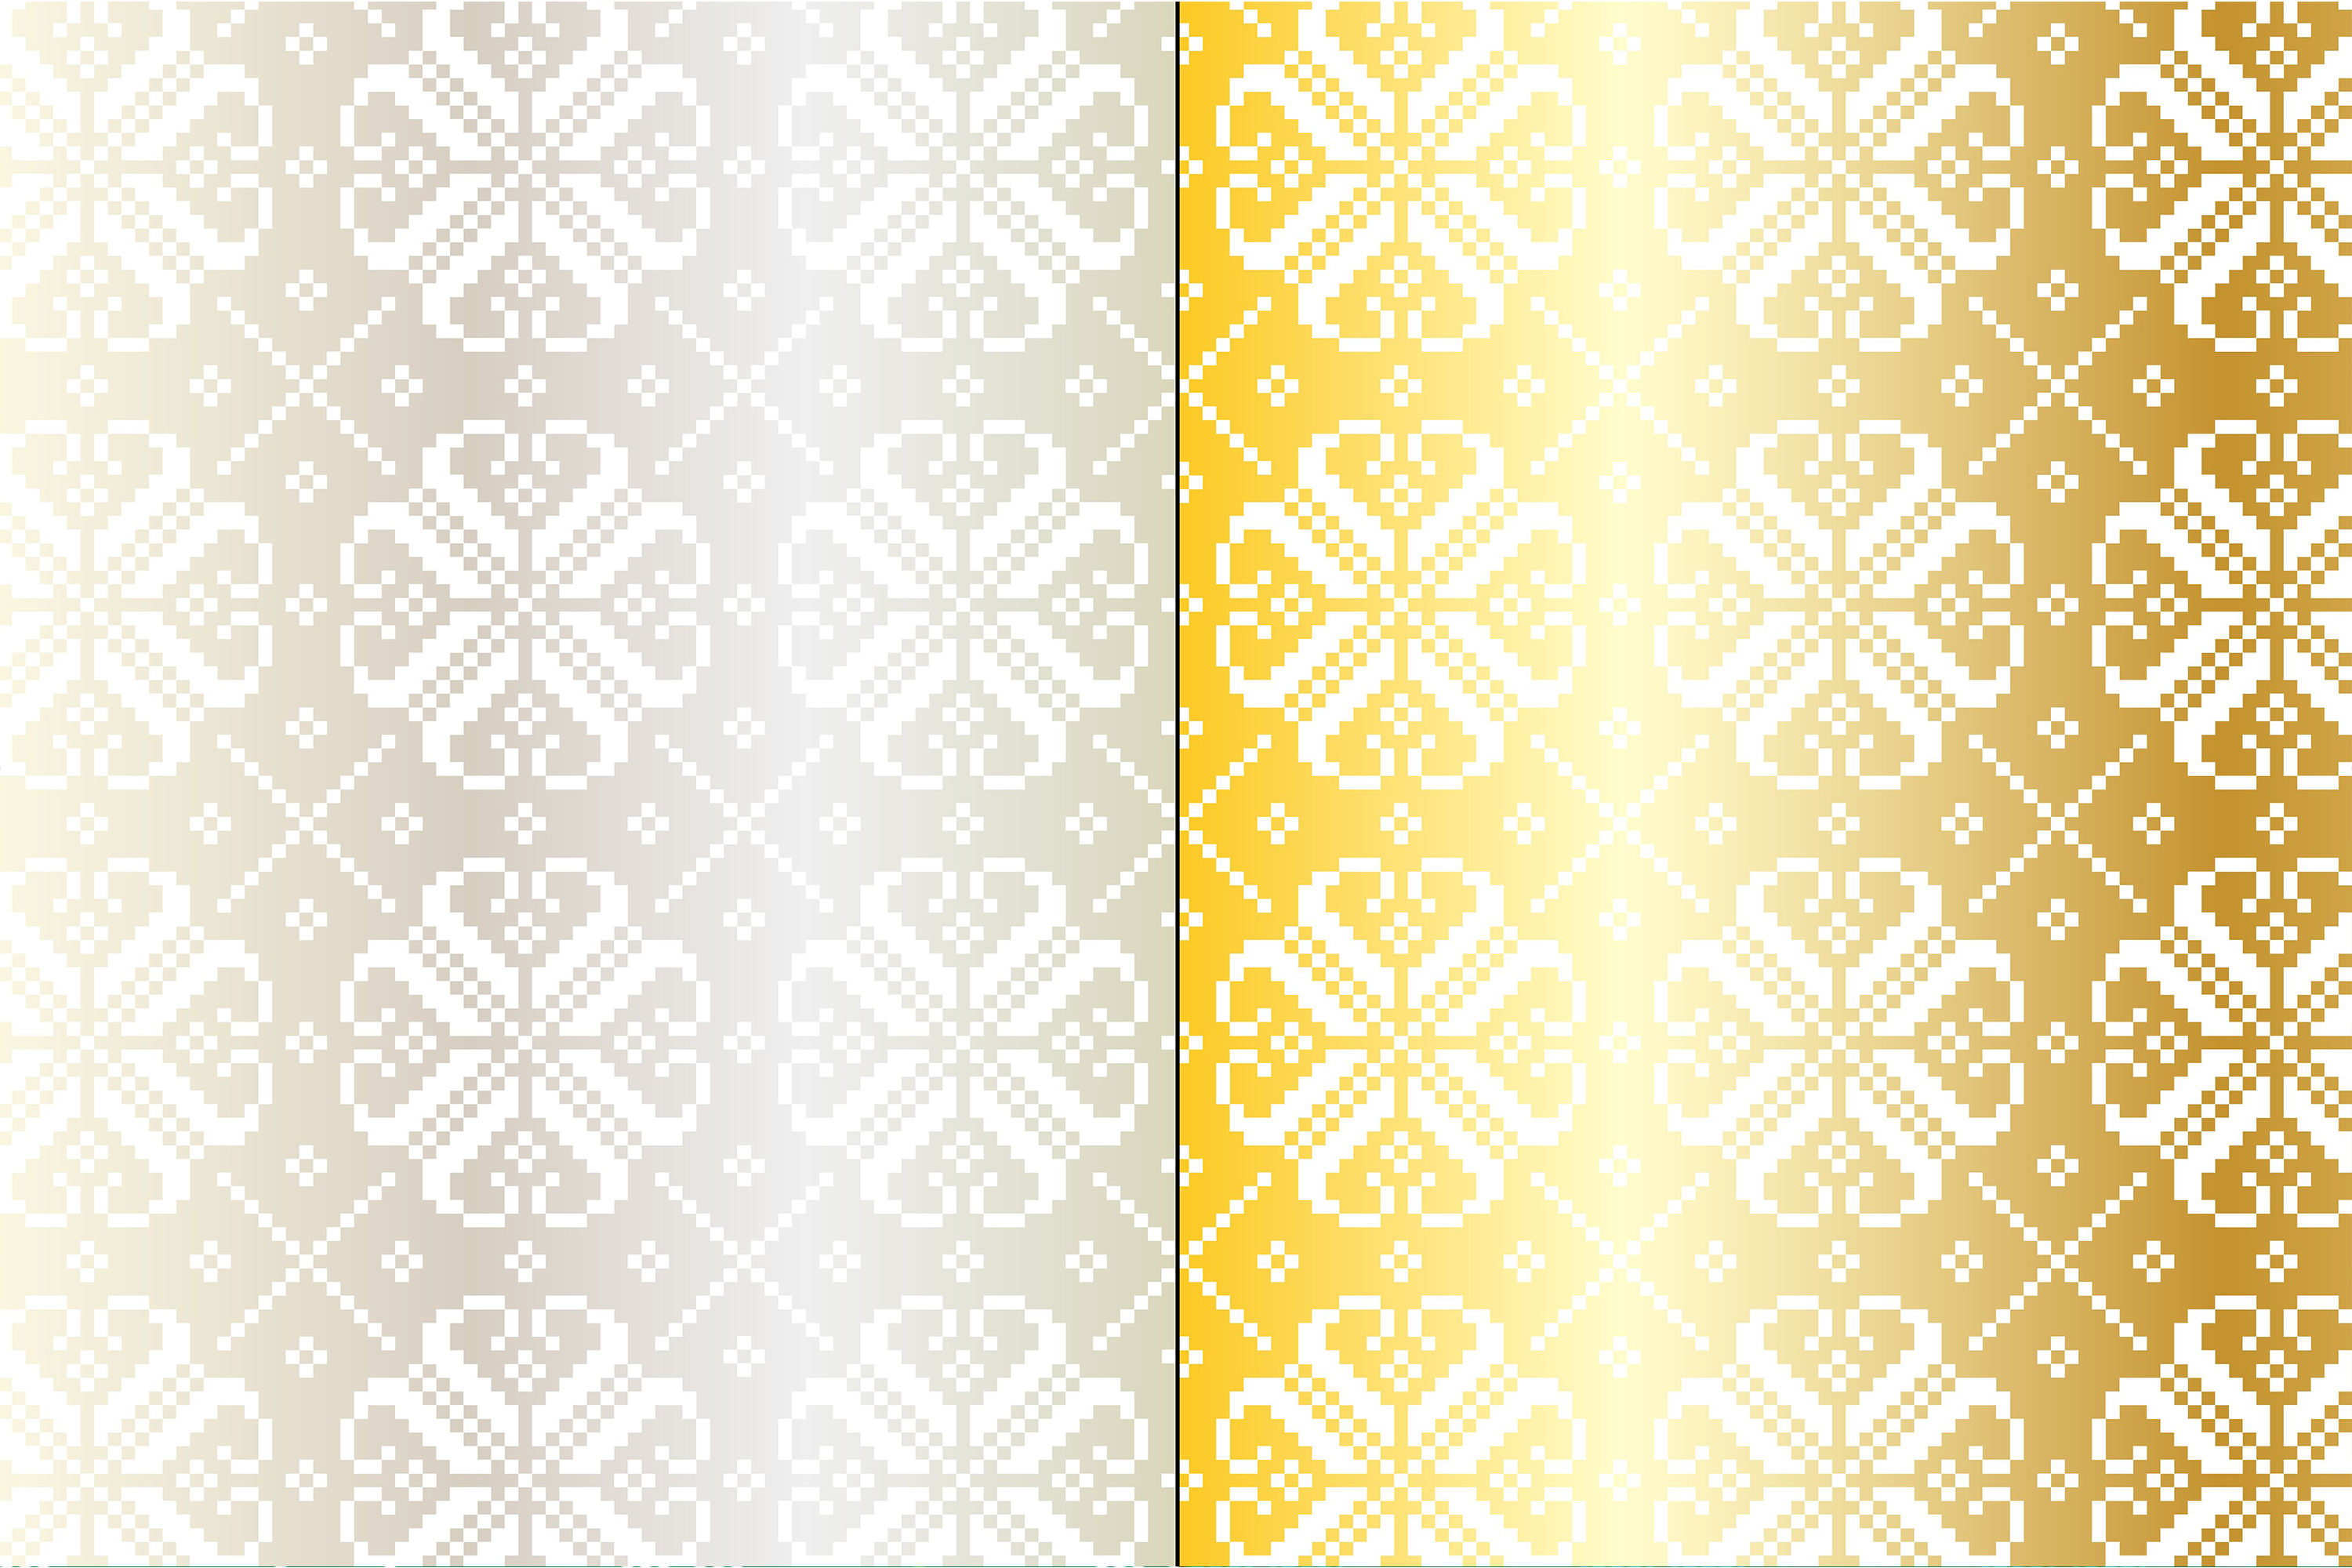 Silver & Gold Nordic Patterns example image 4